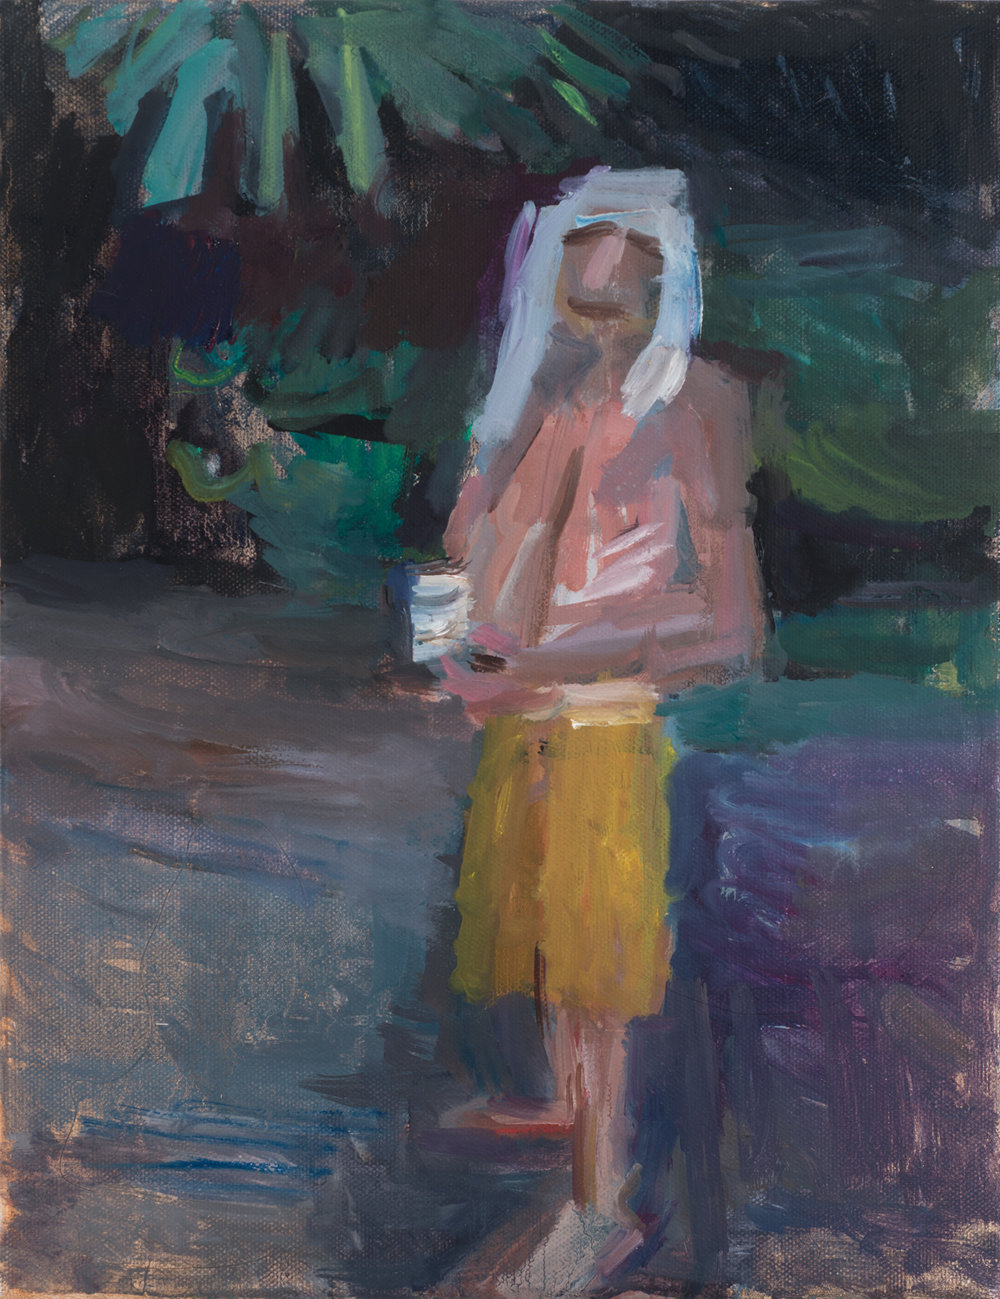 Man Drinking in the Woods